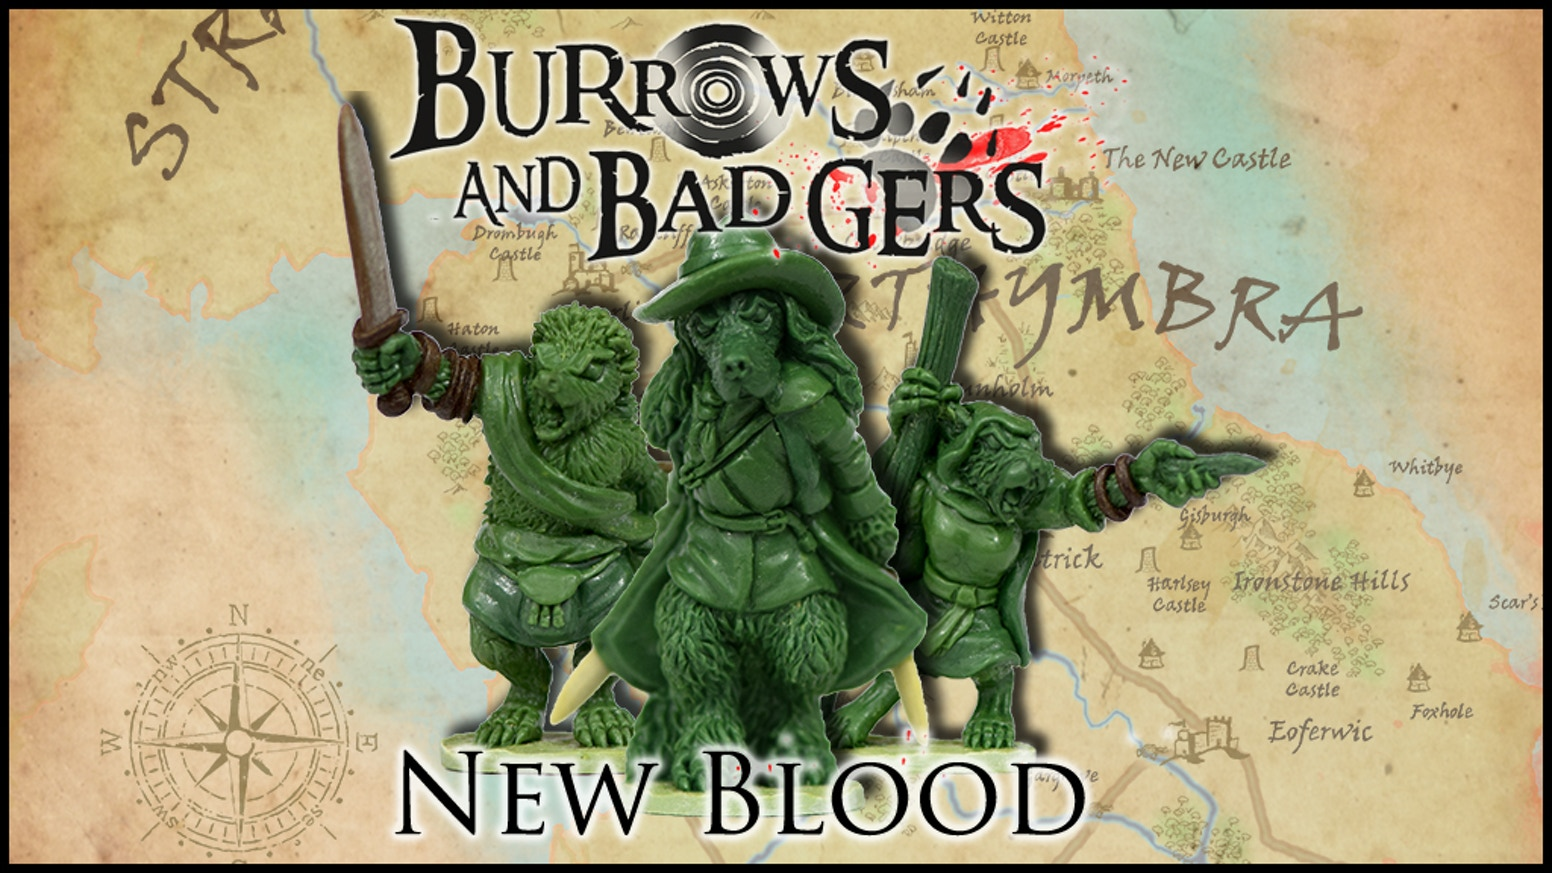 Burrows & Badgers is back with more great anthropomorphic animal metal miniatures for gamers, painters and collectors.